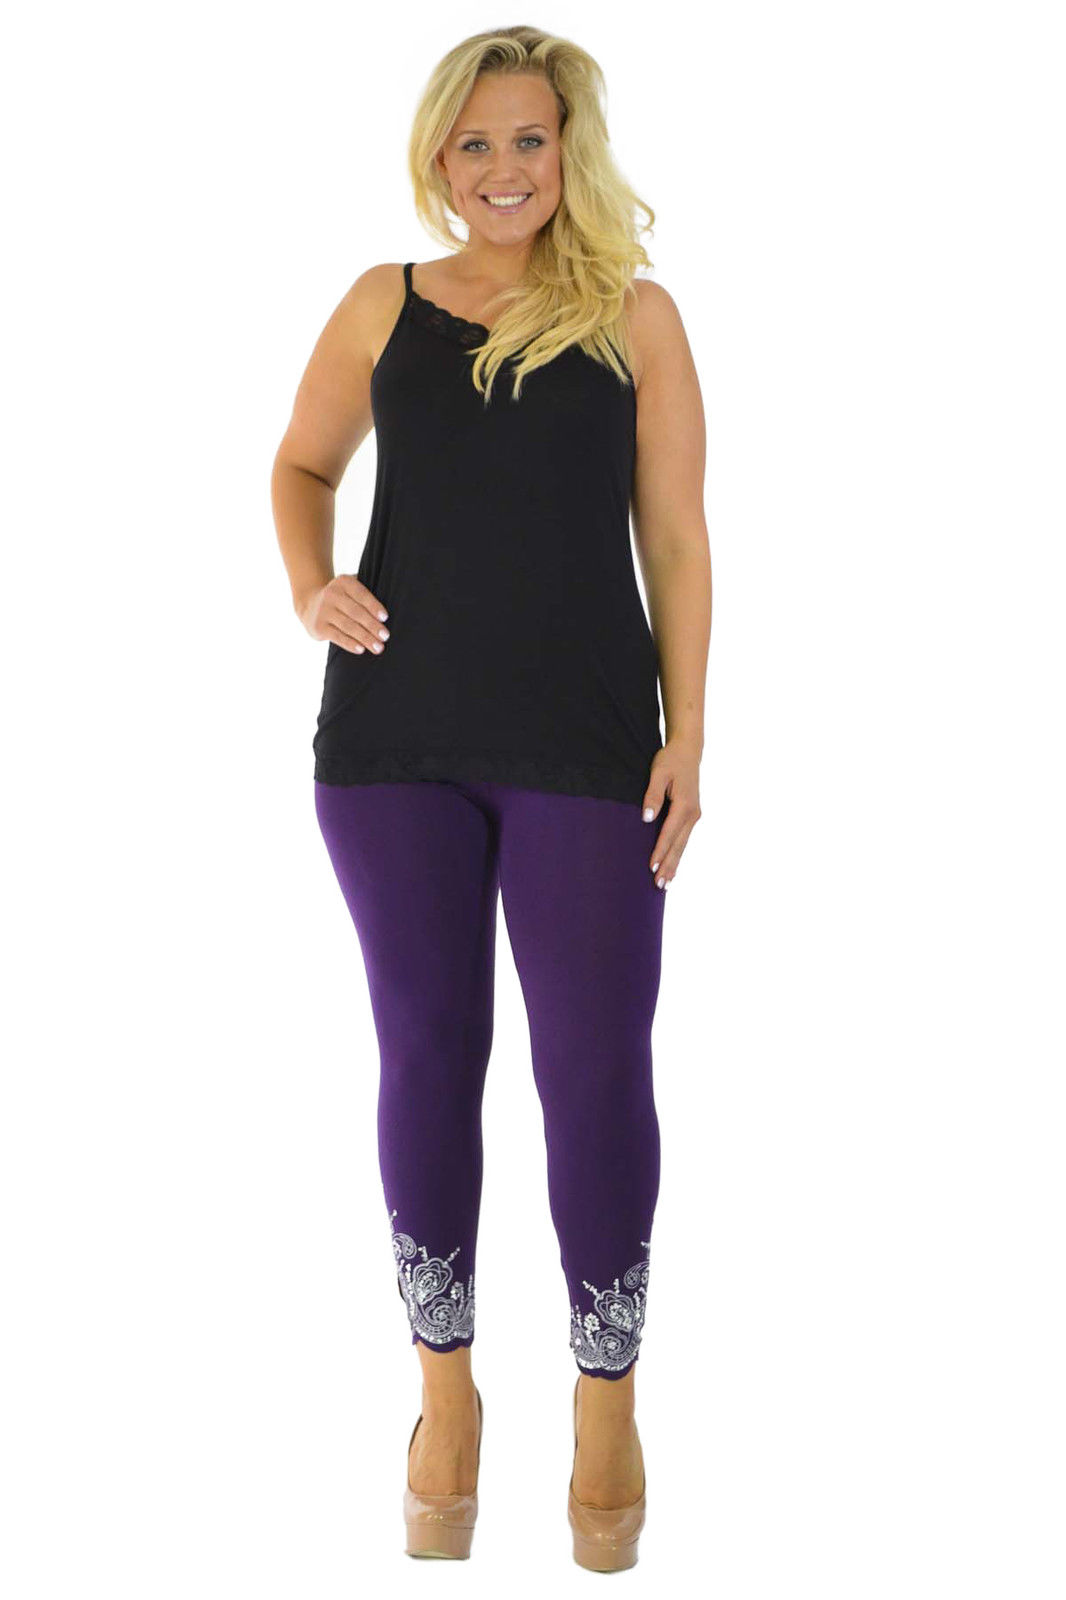 Plus Size Sides Cut Out Leggings. Login to see the price. CN SKU: Chinabrands owned. Remaining deals. Listed: 02/28/ 10 Downloads. Product Published Export Description. EOL. Plus Size High Waist American Flag Print Leggings. Login to see the price. CN